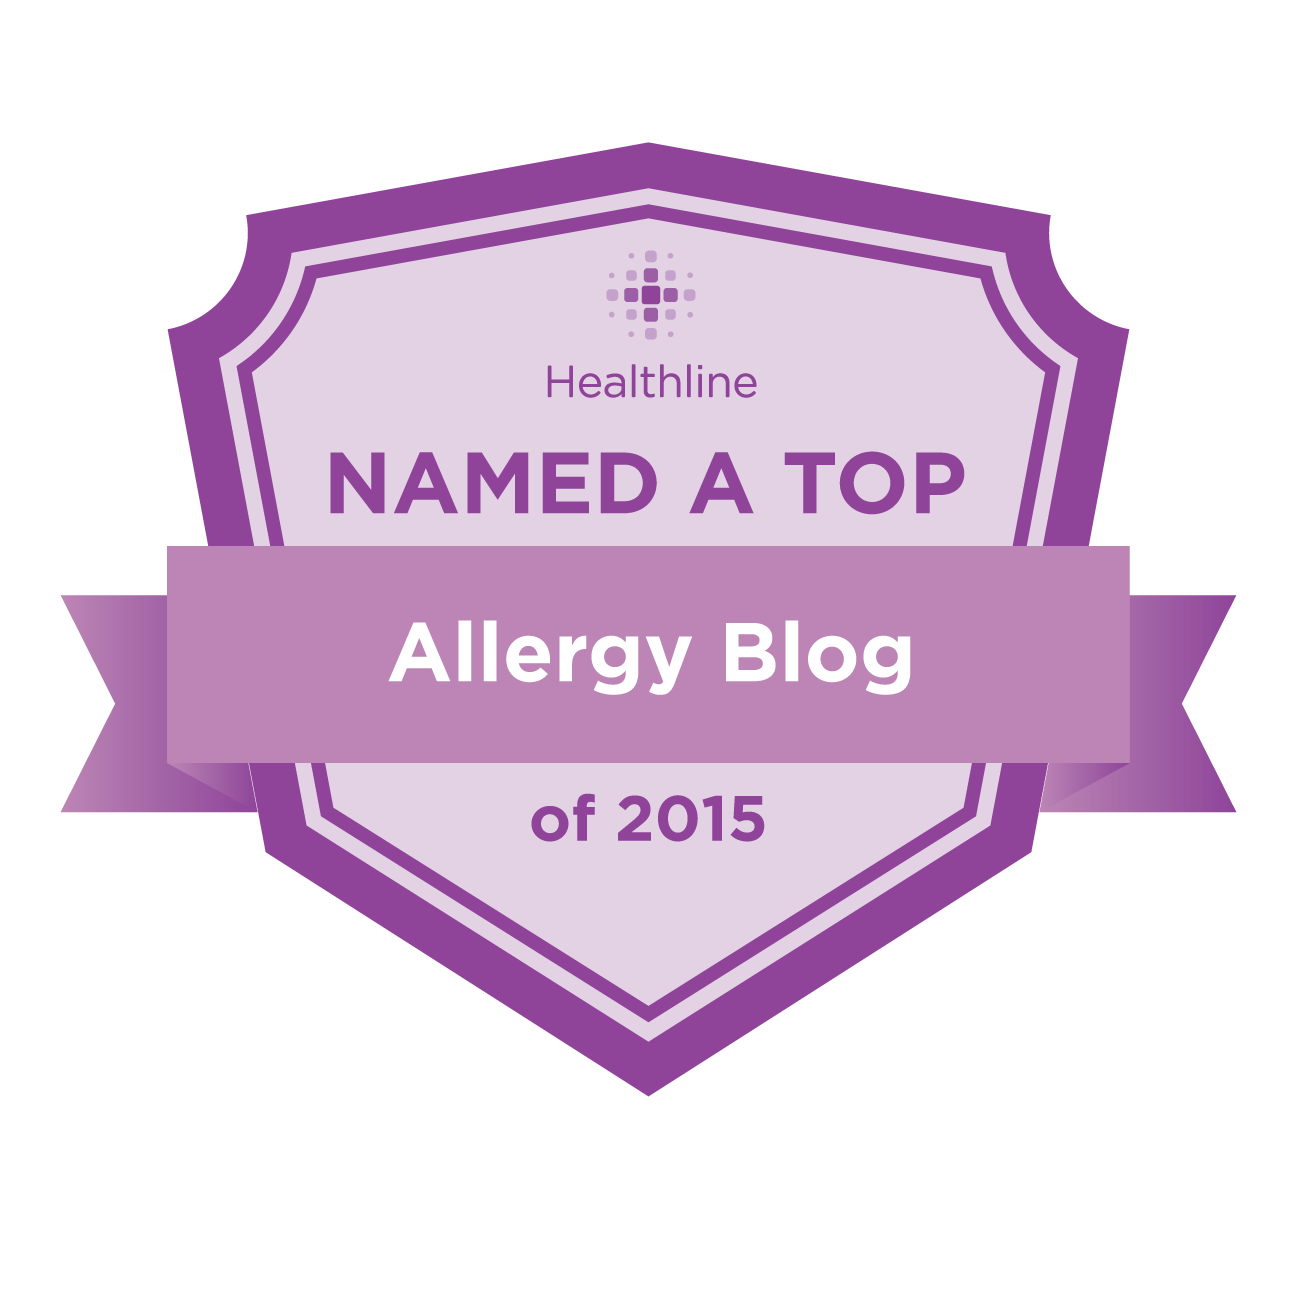 Best Allergy Blog of 2015